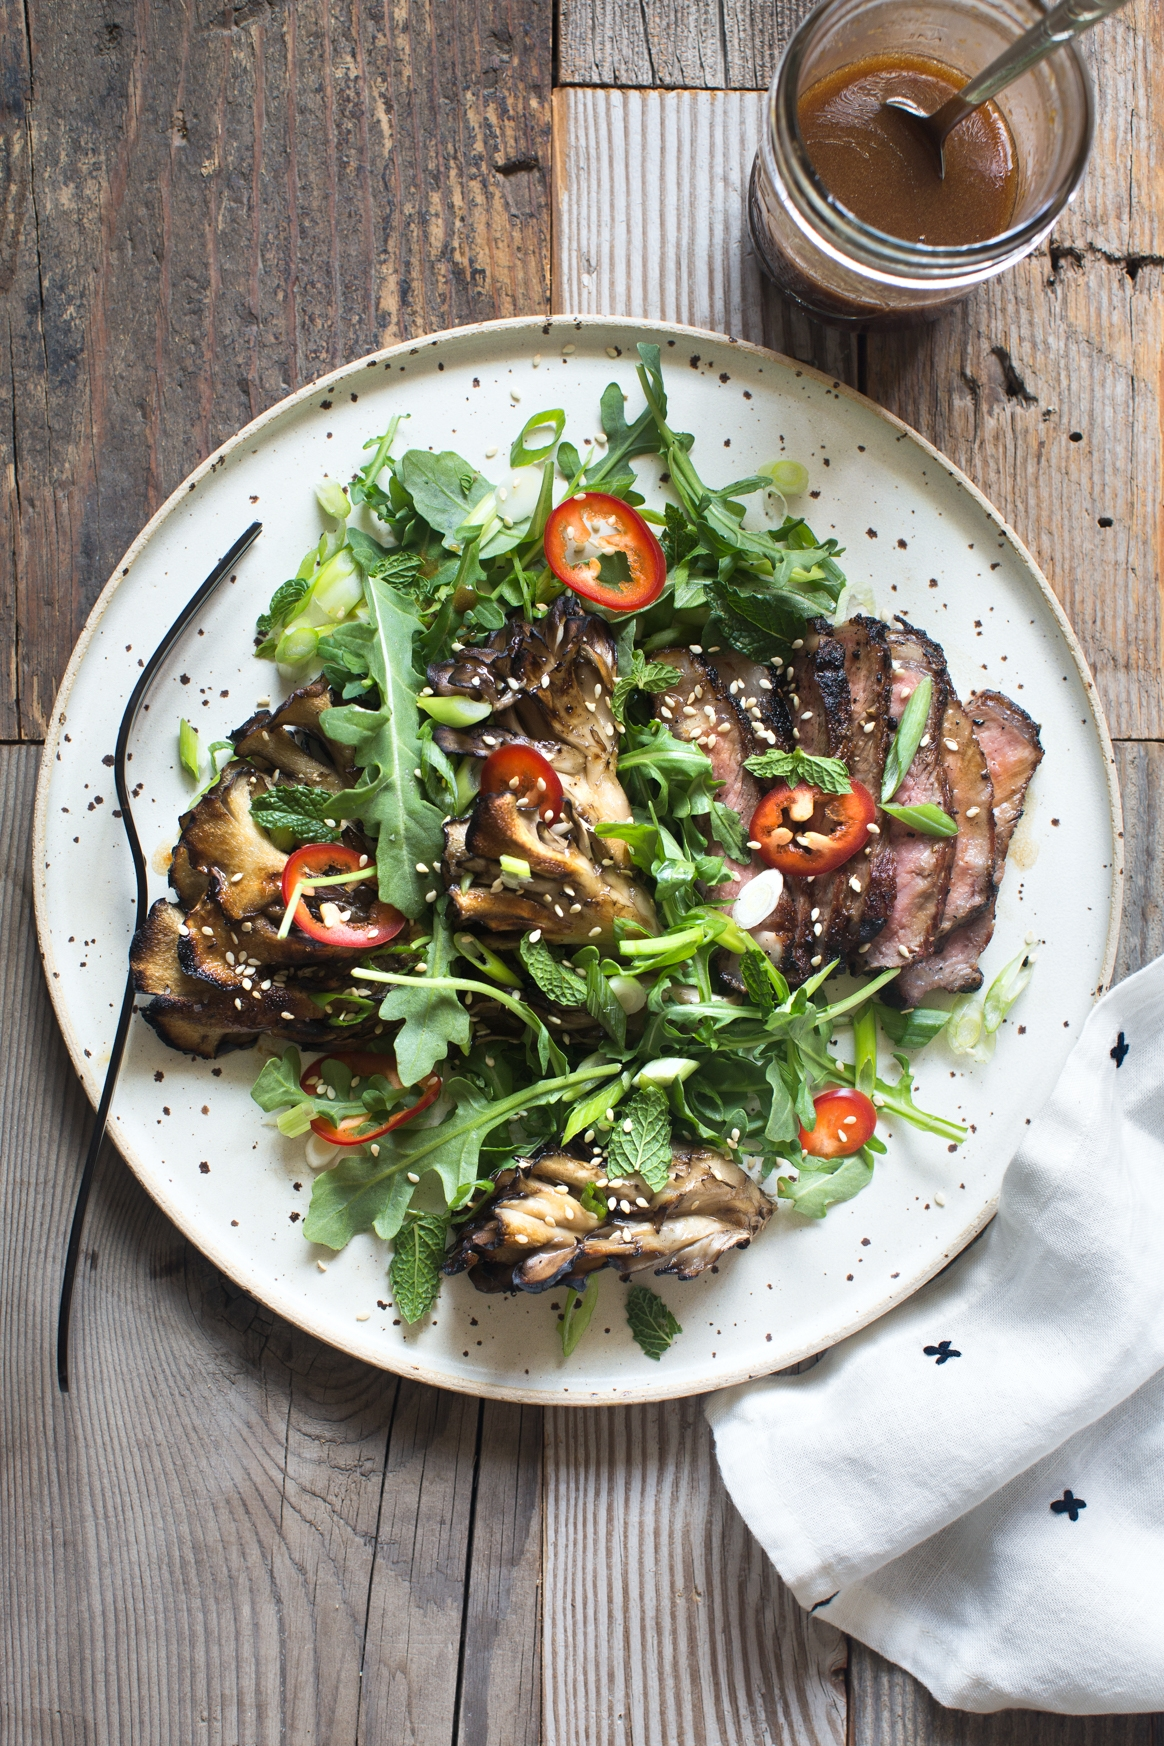 Grilled Steak & Mushroom Salad Recipe